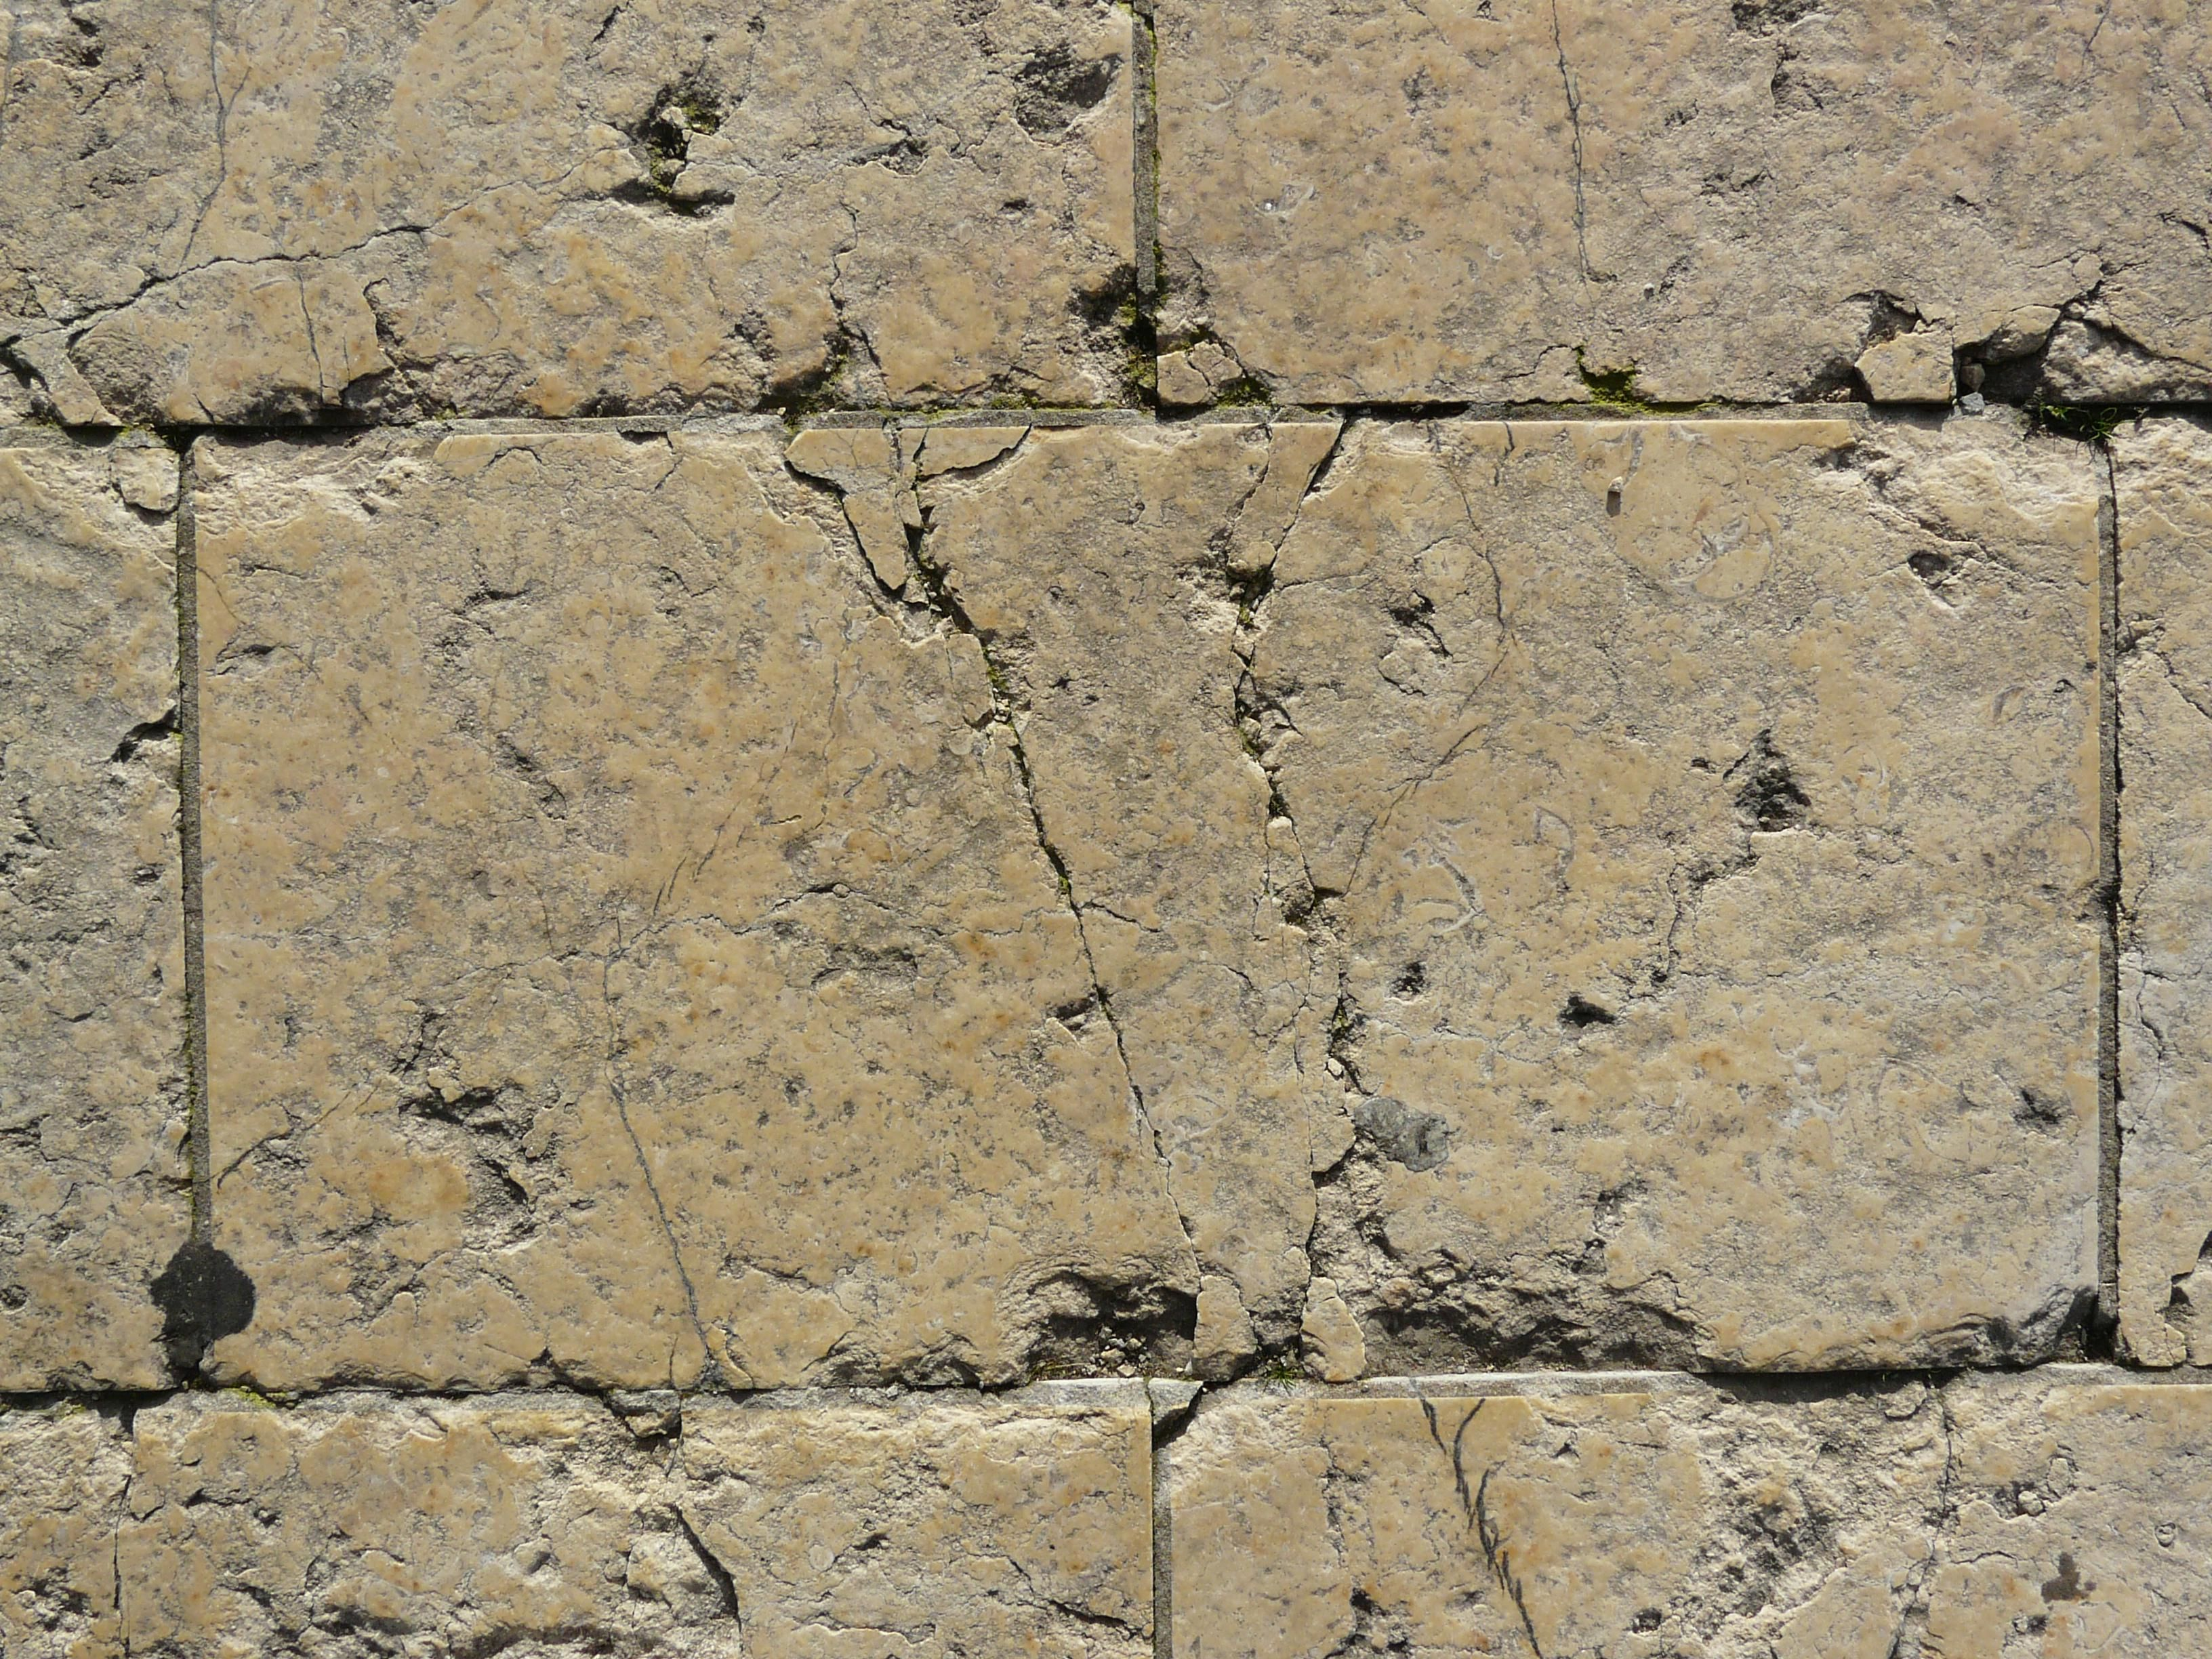 File:Old wall texture.jpg - Wikimedia Commons